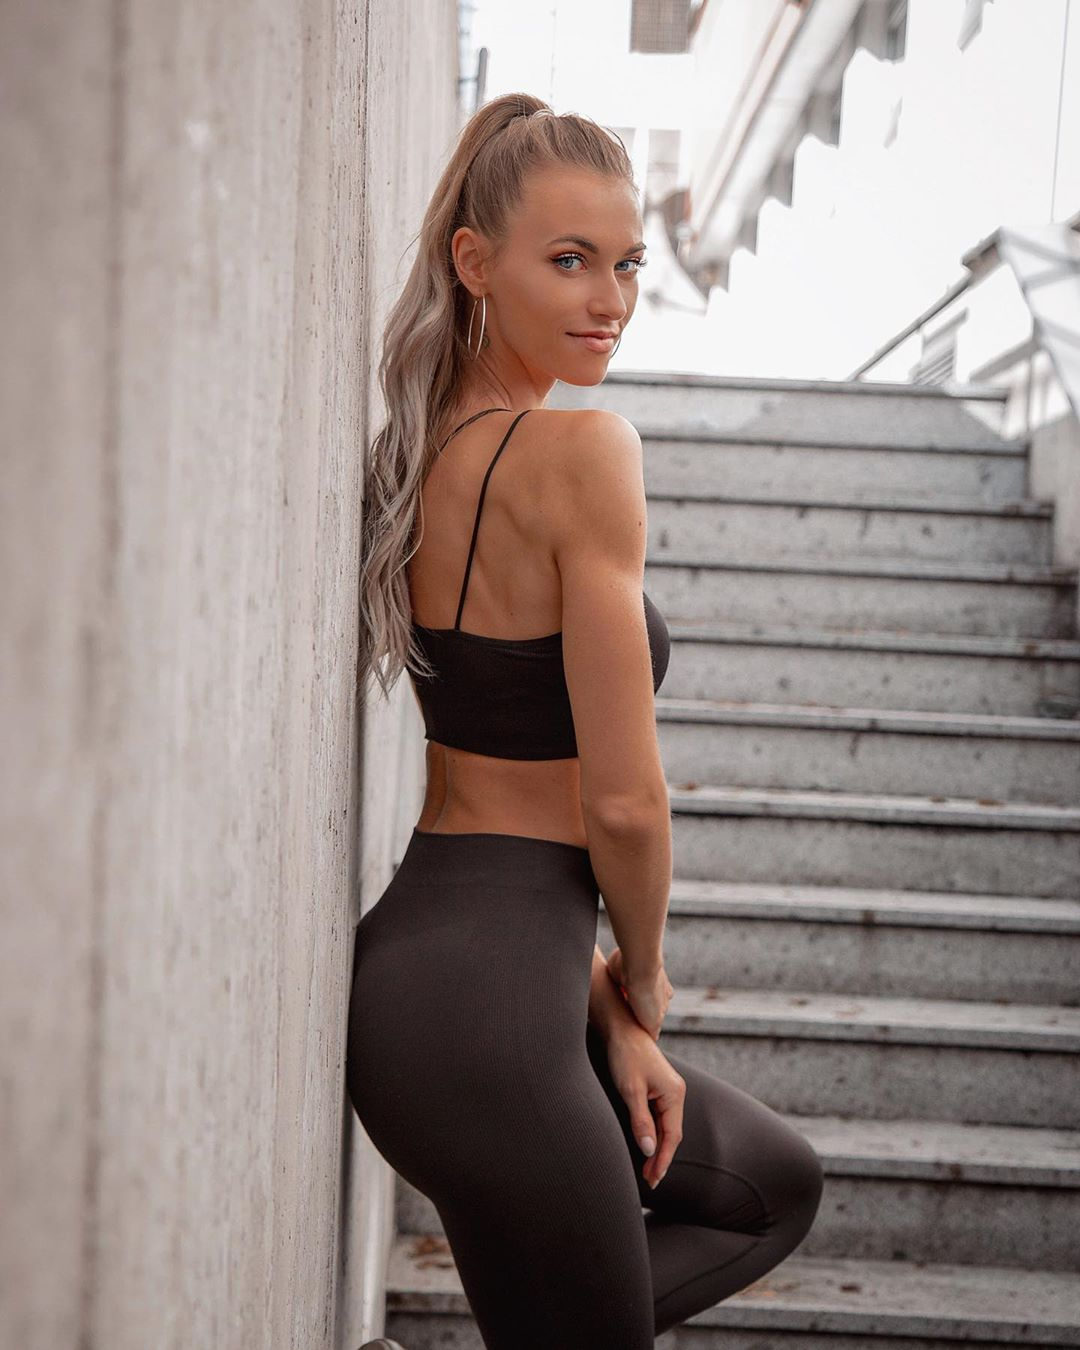 Sabrina-Guric-Wallpapers-Insta-Fit-Bio-11